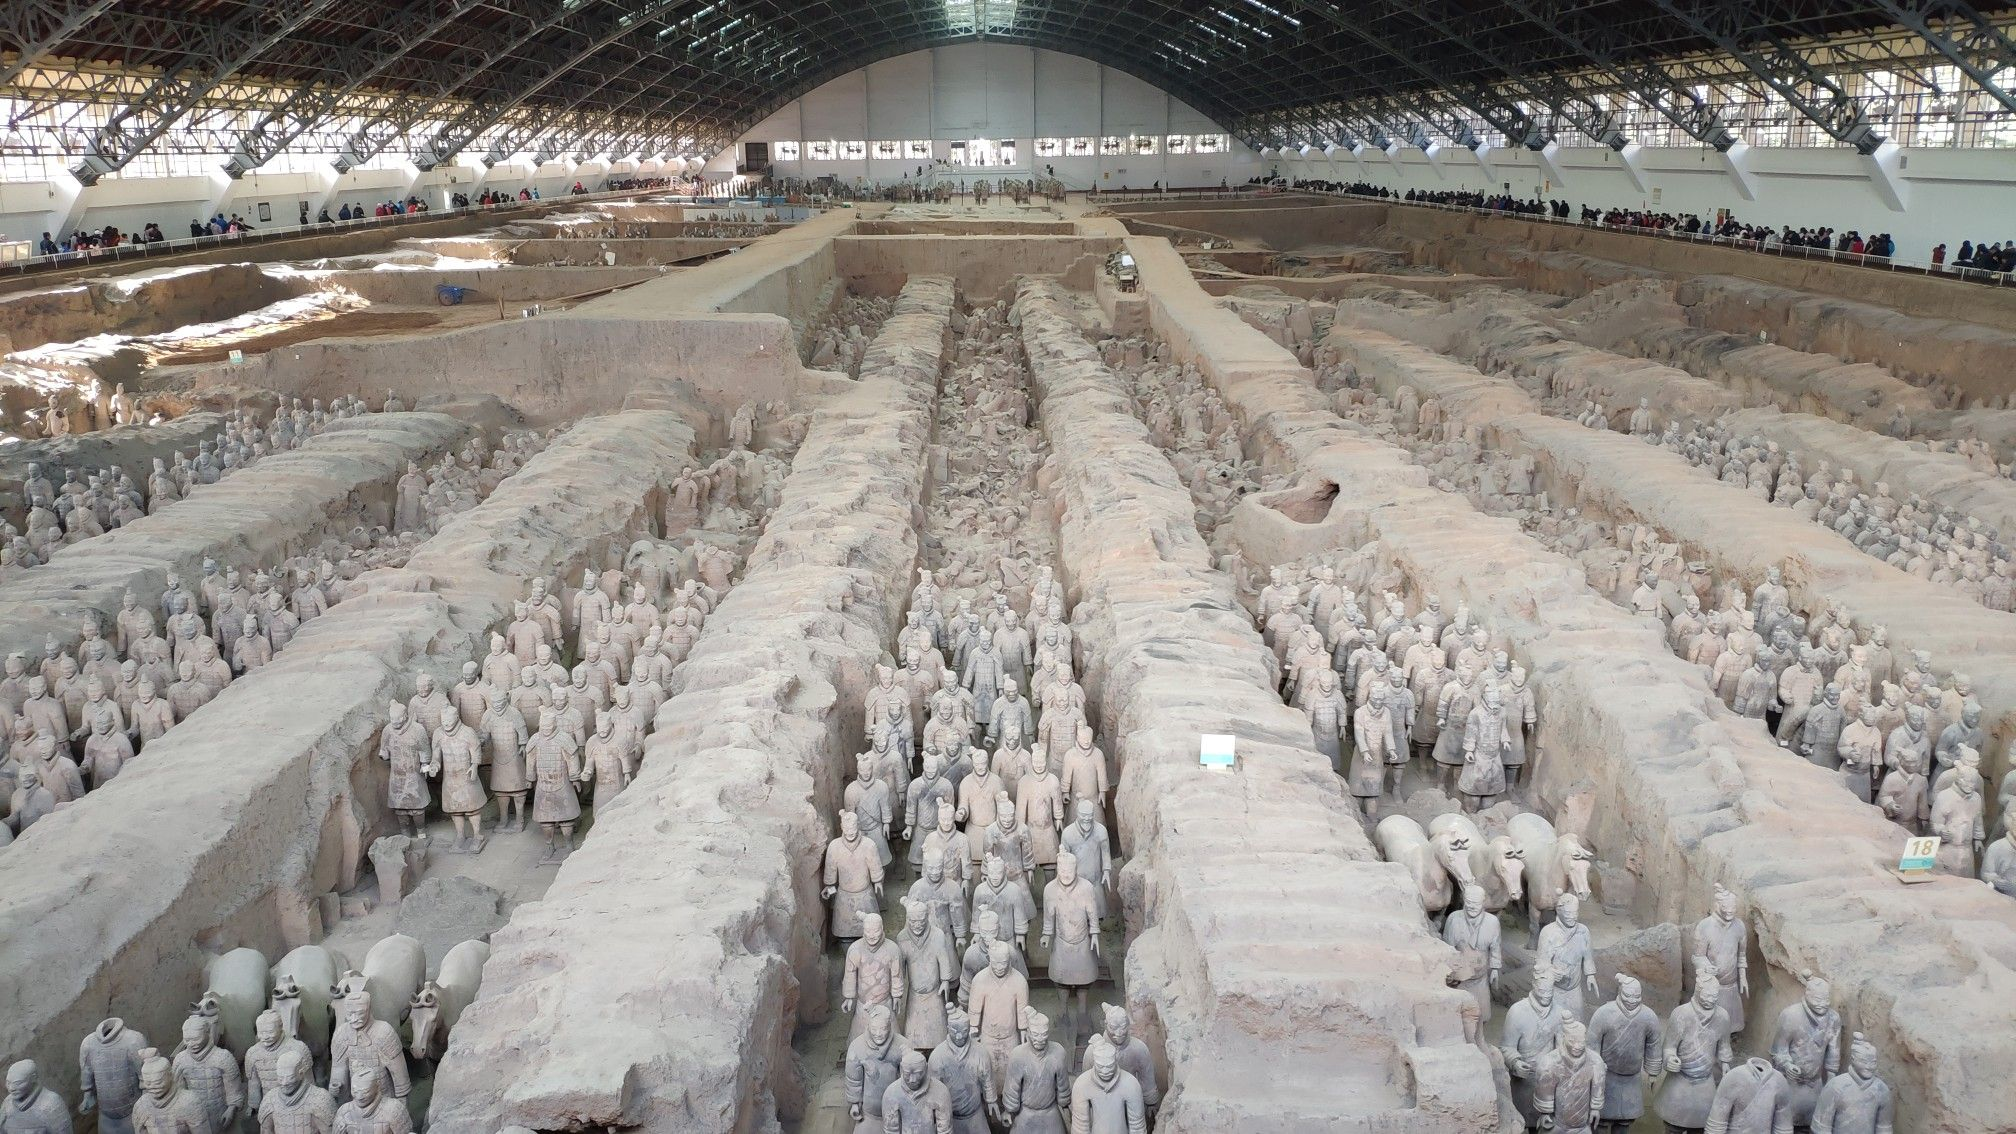 Pin By Shellj On Travel In China In 2020 Cool Places To Visit Places To Visit Xi An